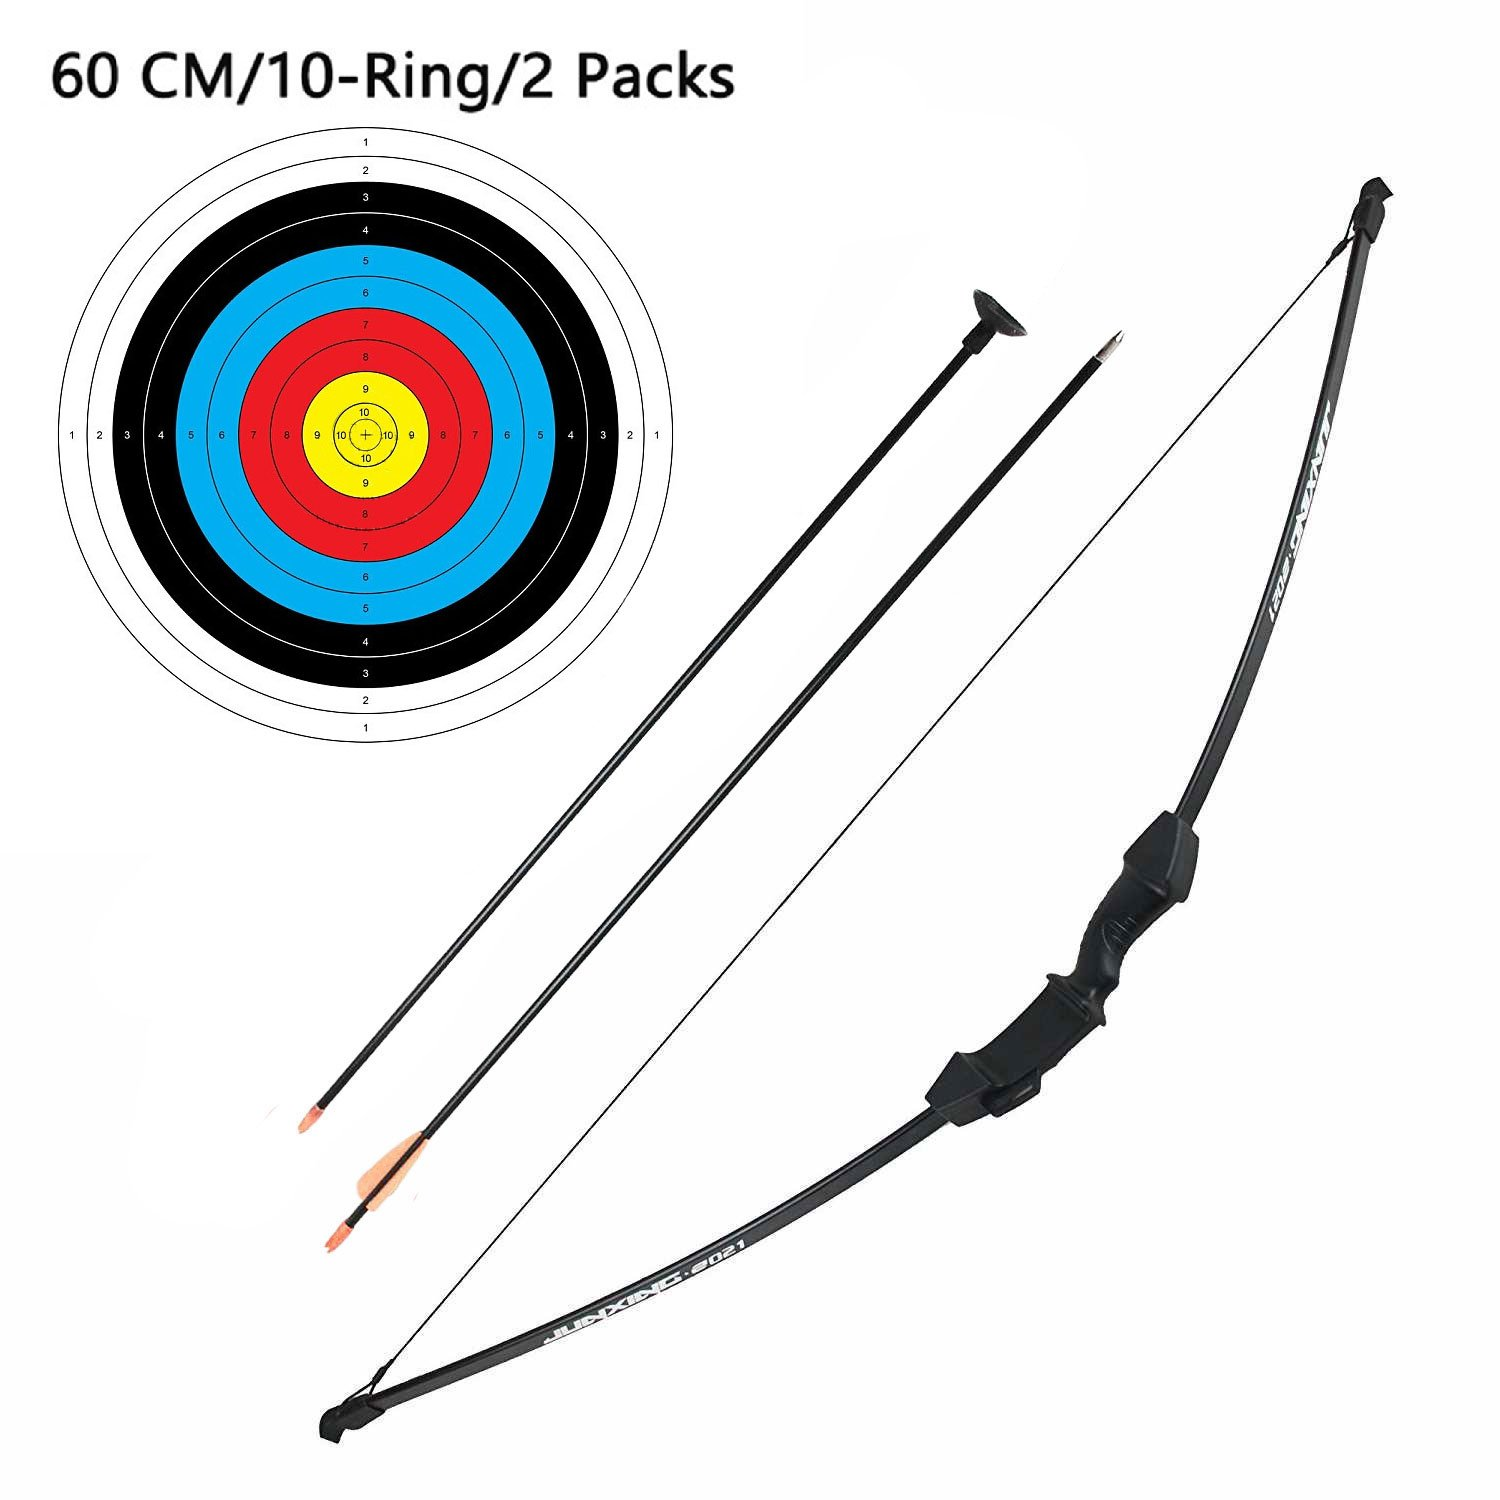 Junior Children Recurve Bow Hunting Archery Bow and Arrow set Youth Bow Training Toy Best Gift for Kids 18 Lb 45 Inches (2 x Arrows,2 x Archery Papers)